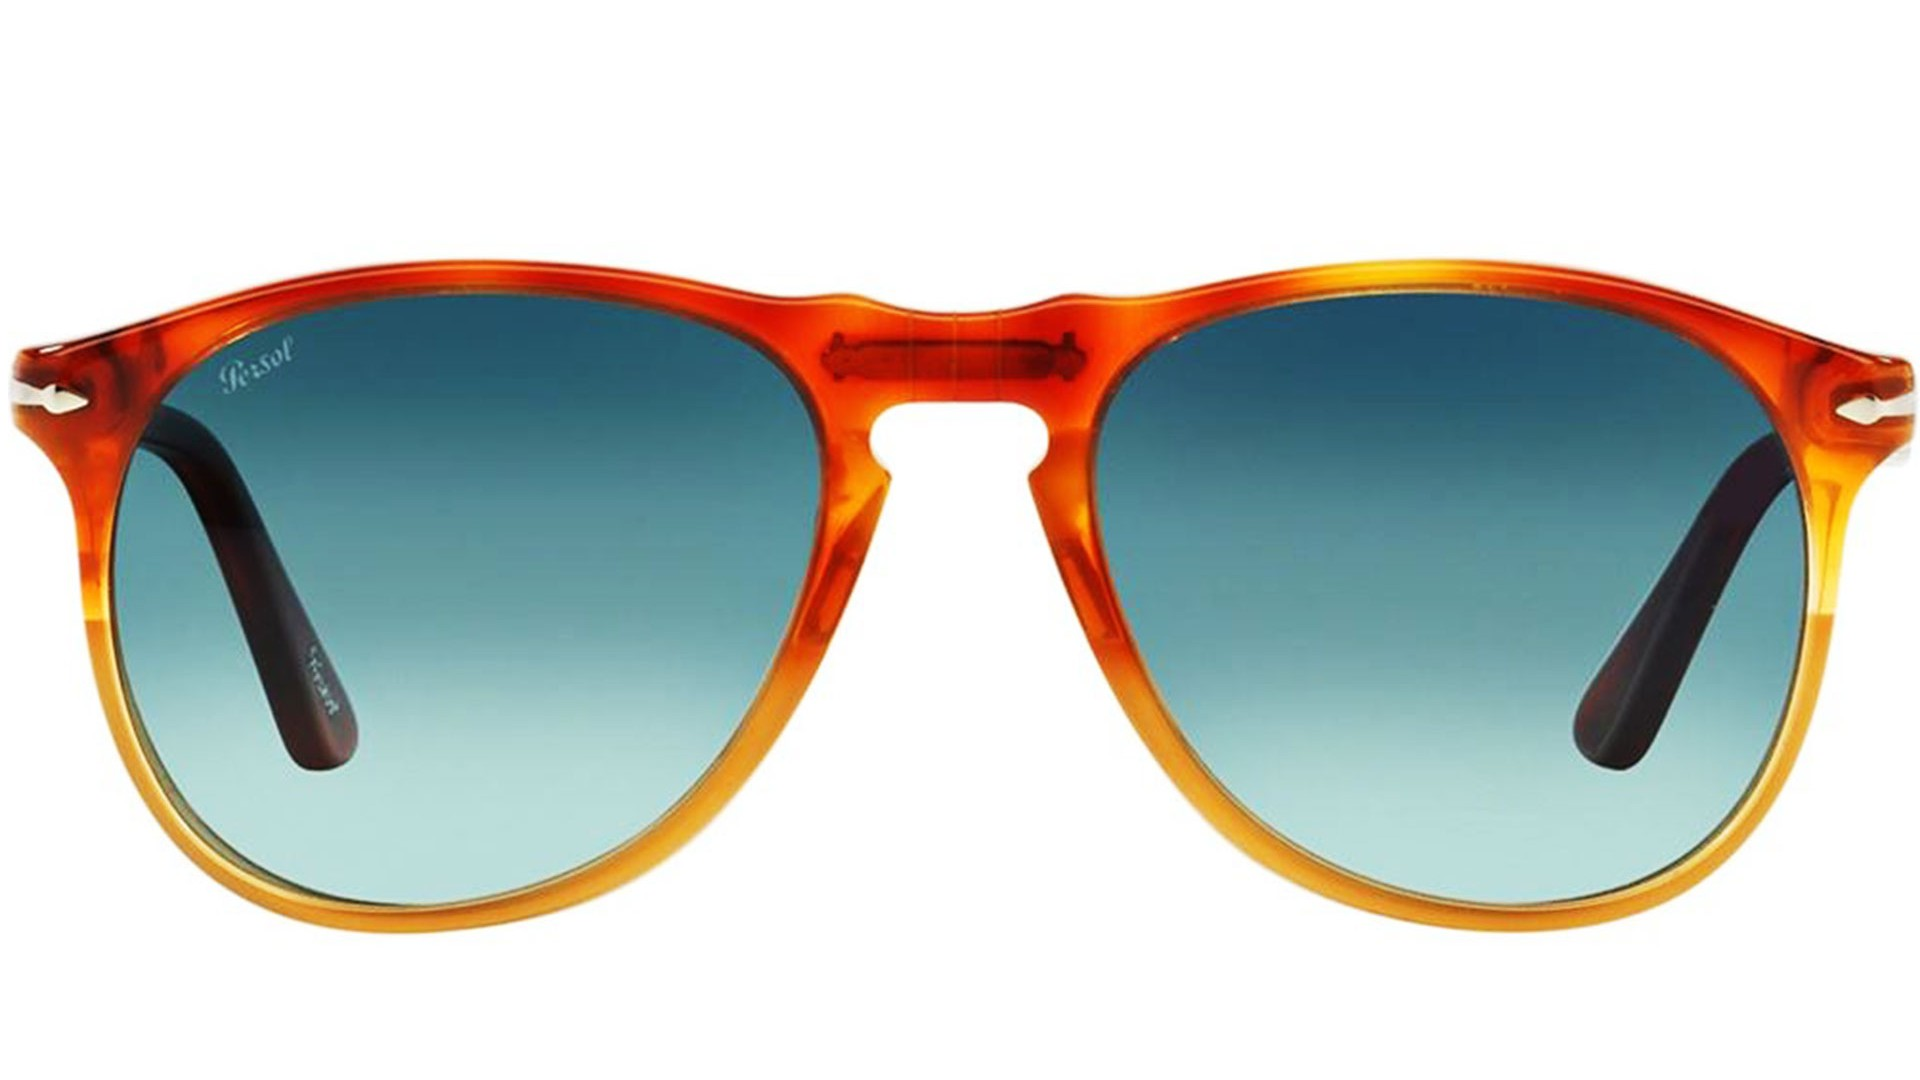 Persol 649 series